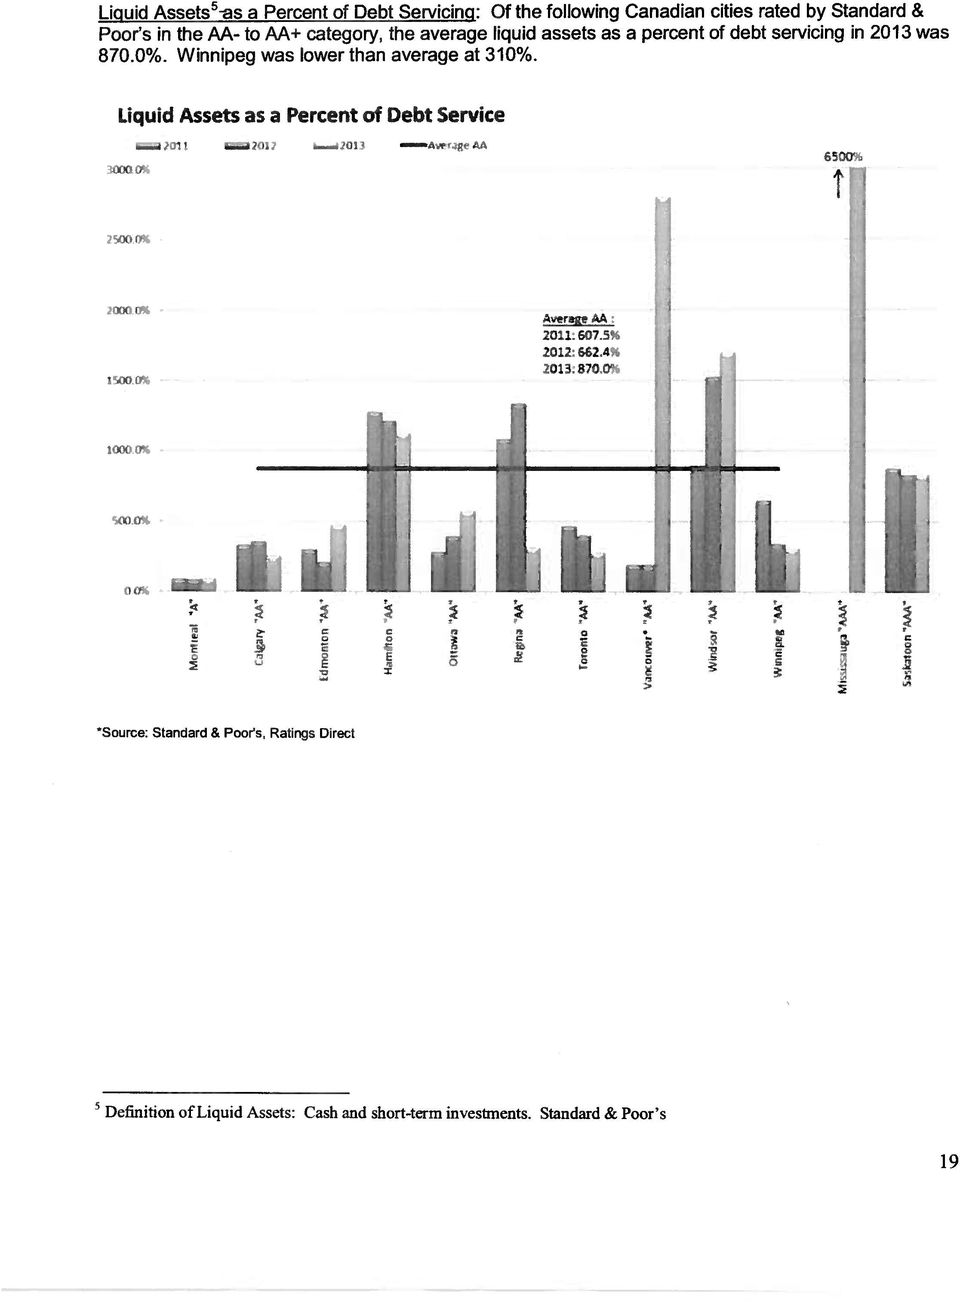 Liquid Assets as a Percent of Debt Service 3i1O 7.?IU! : - 4)fl 6500 11 MO 0% vere A 2011: &075 2012: 662,$?Ot 3.